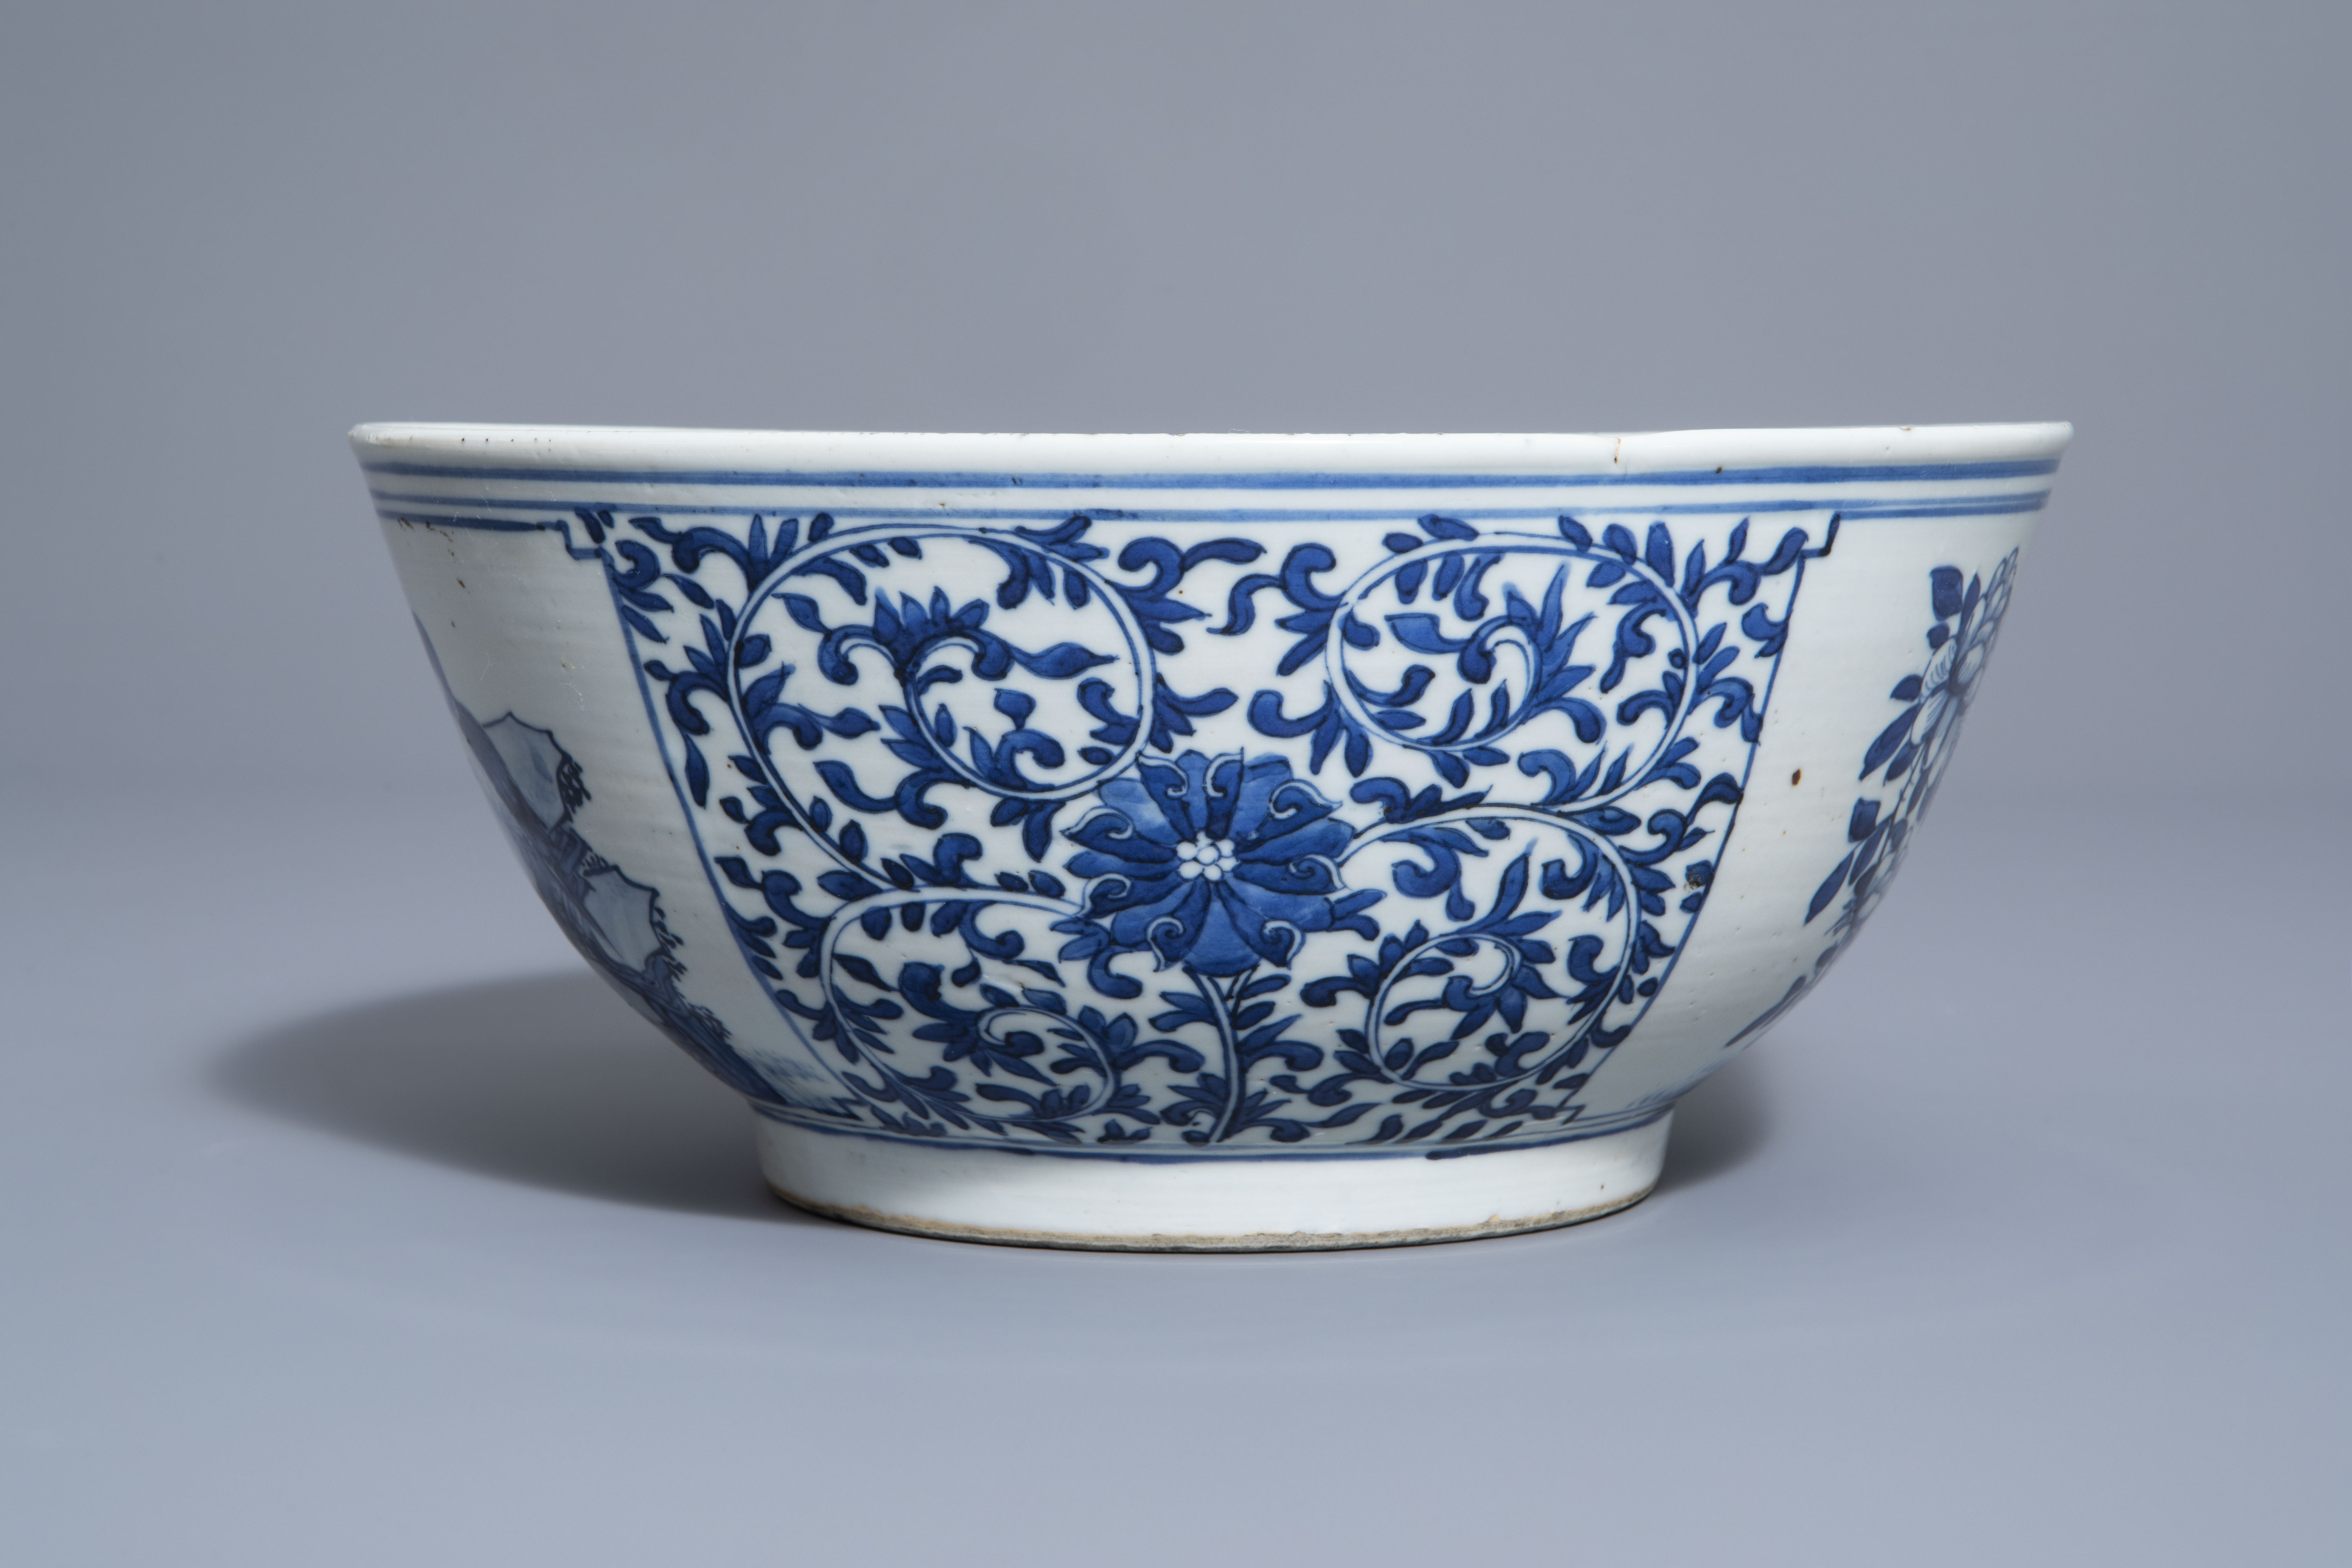 A Chinese blue and white bowl with birds and flowers, 19th C. - Image 3 of 7